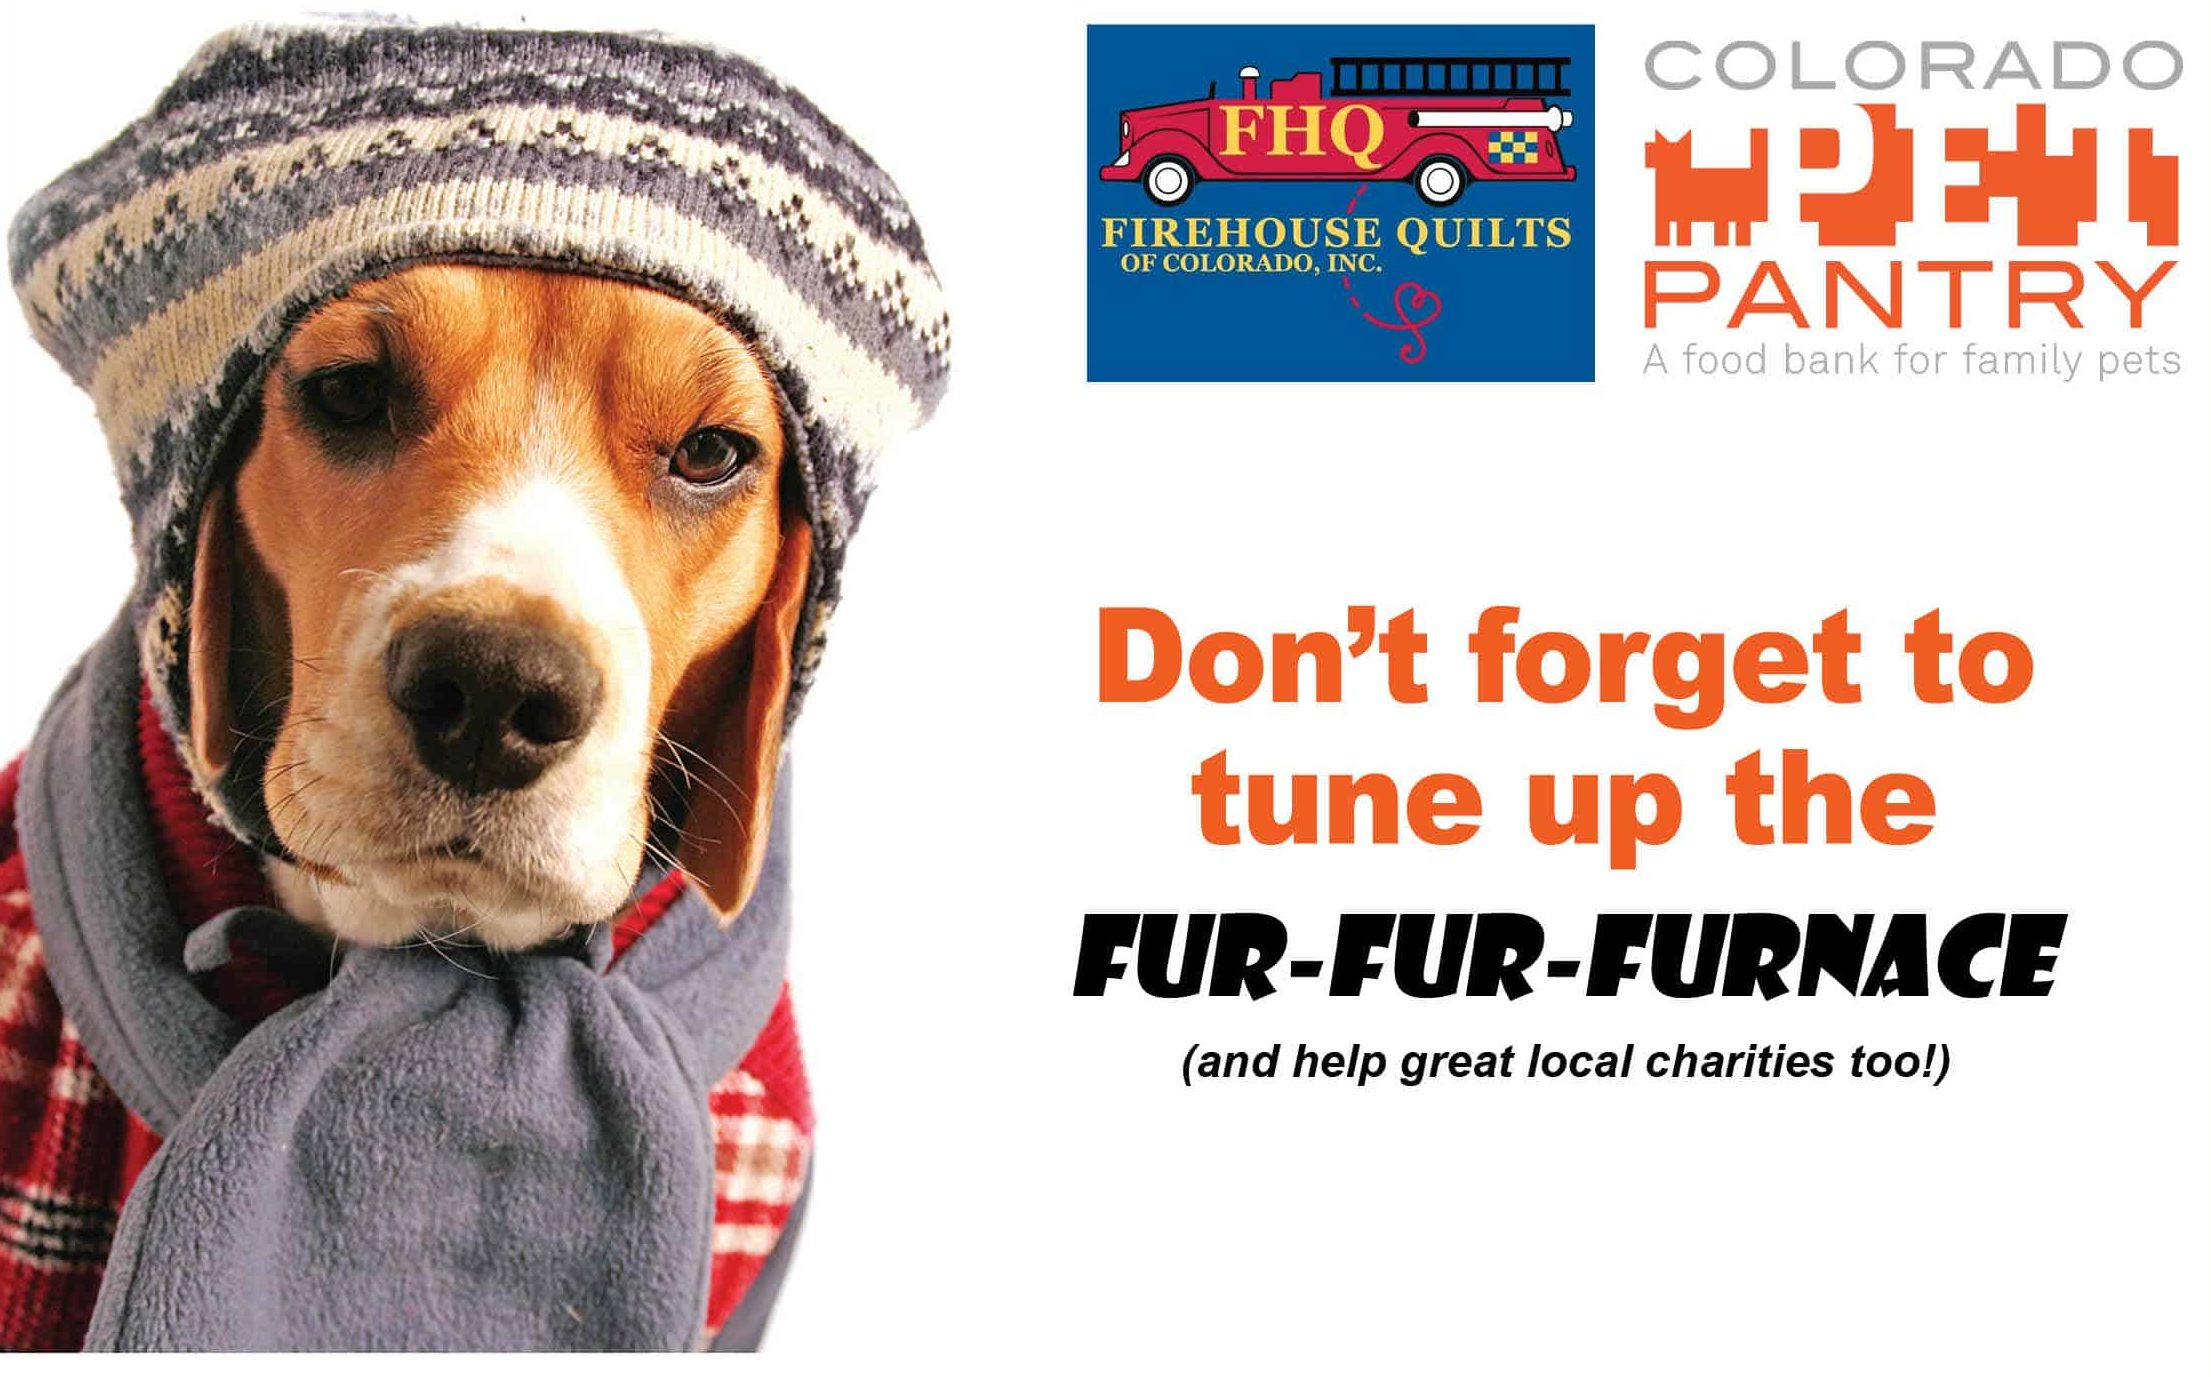 dog dressed up in winter outfit reminds readers to check their furnace